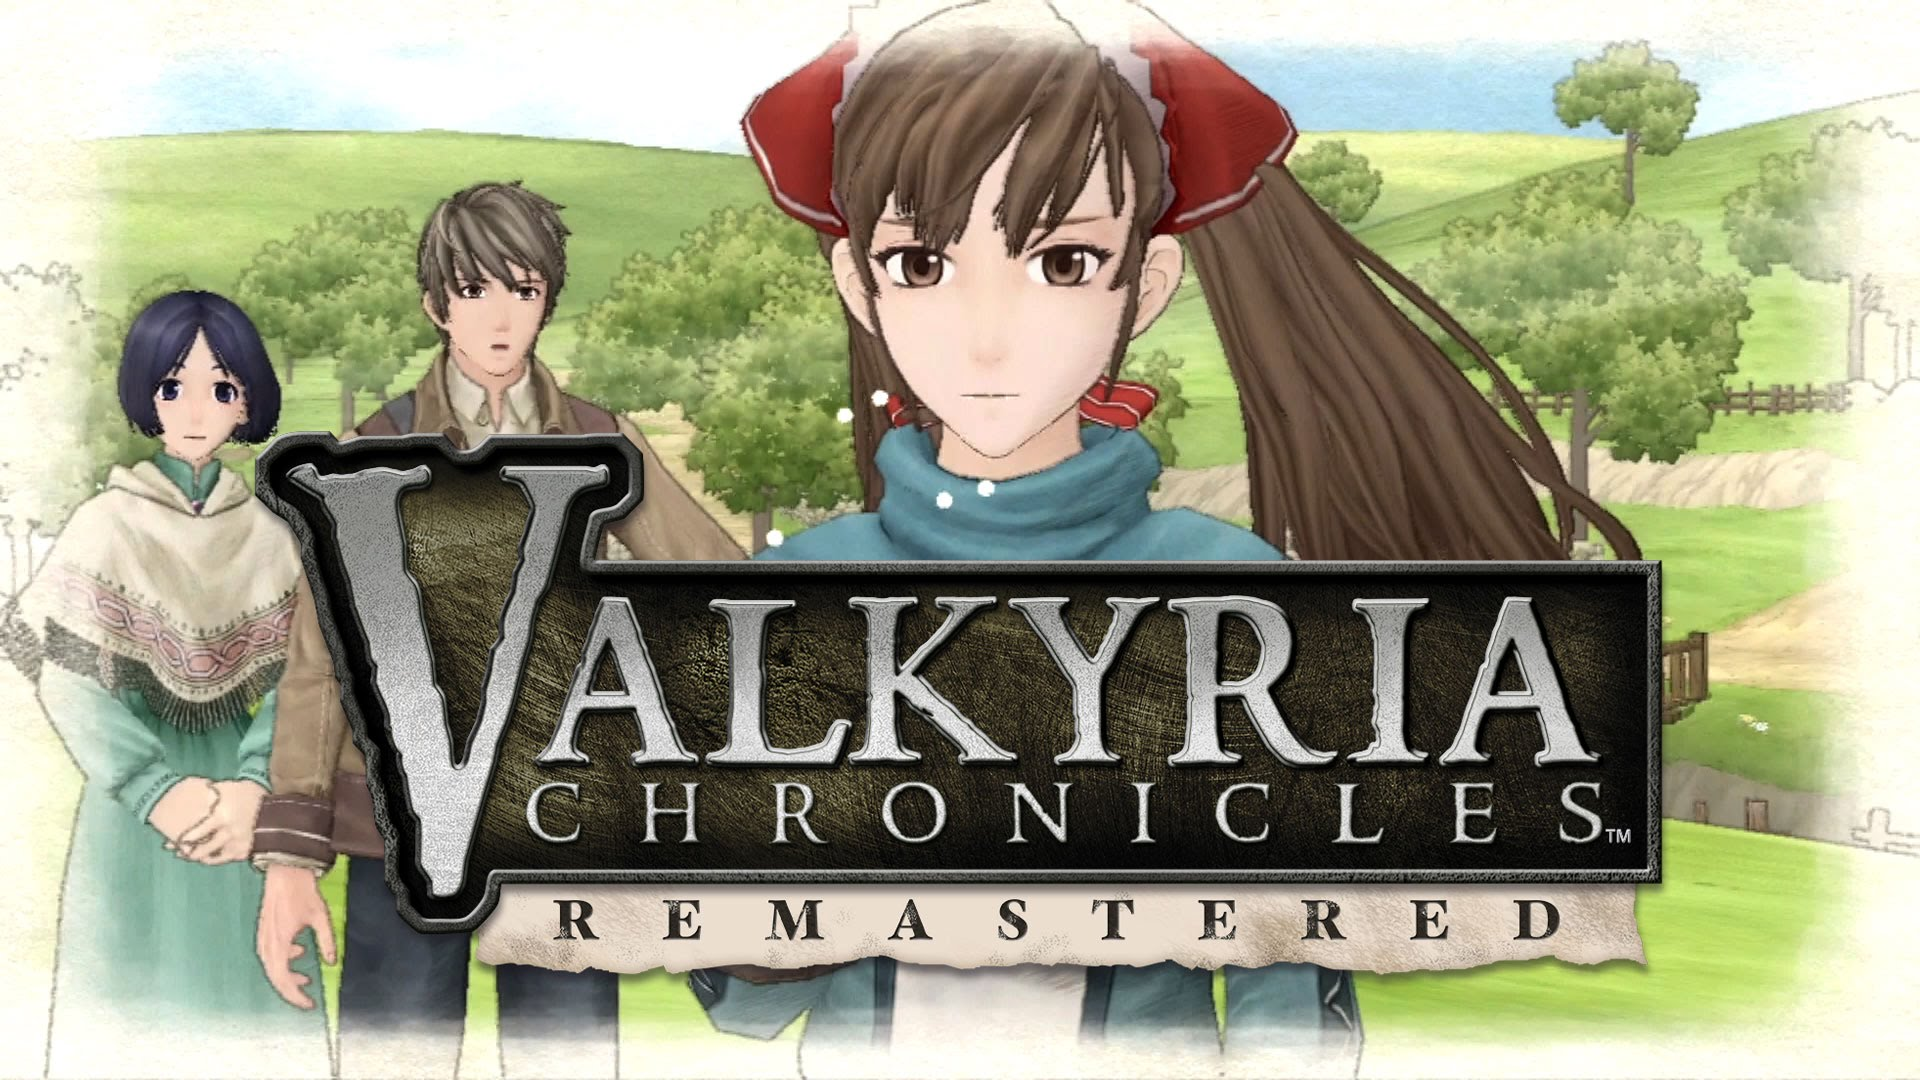 Valkyria Chronicles Remastered | Story Trailer